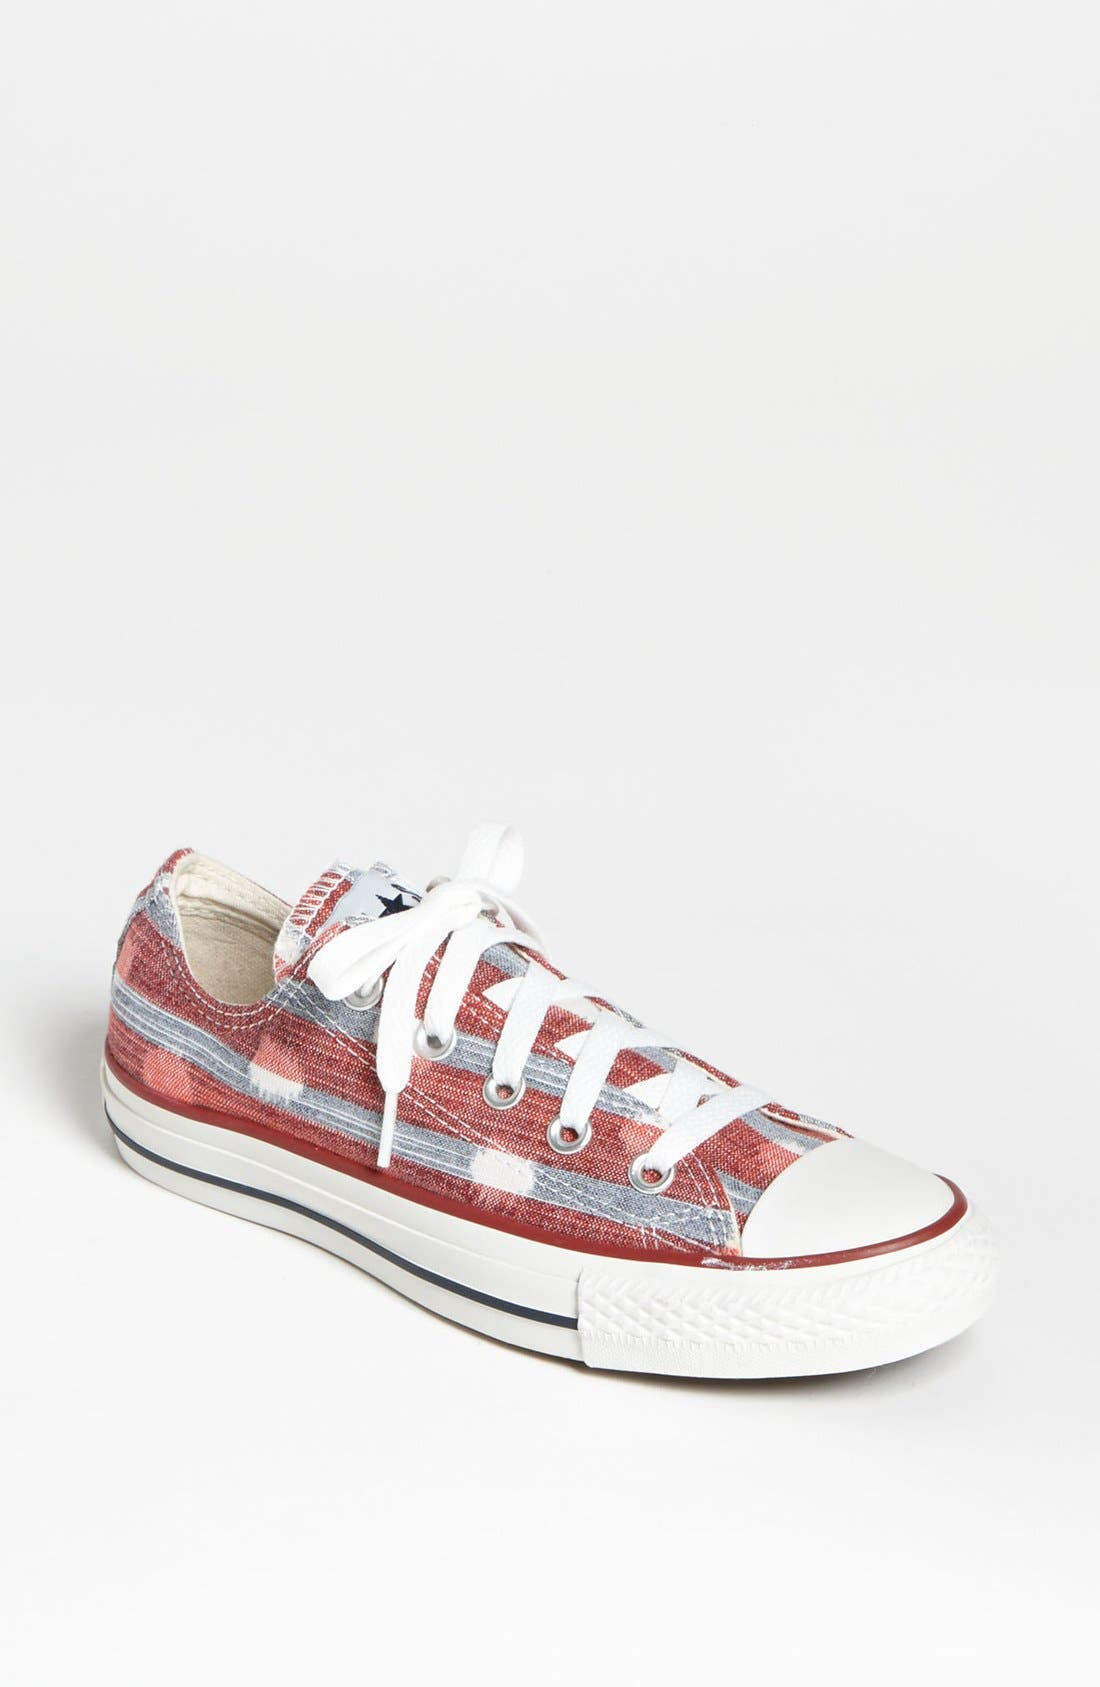 Alternate Image 1 Selected - Converse Chuck Taylor® All Star® 'Stripes' Sneaker (Women)